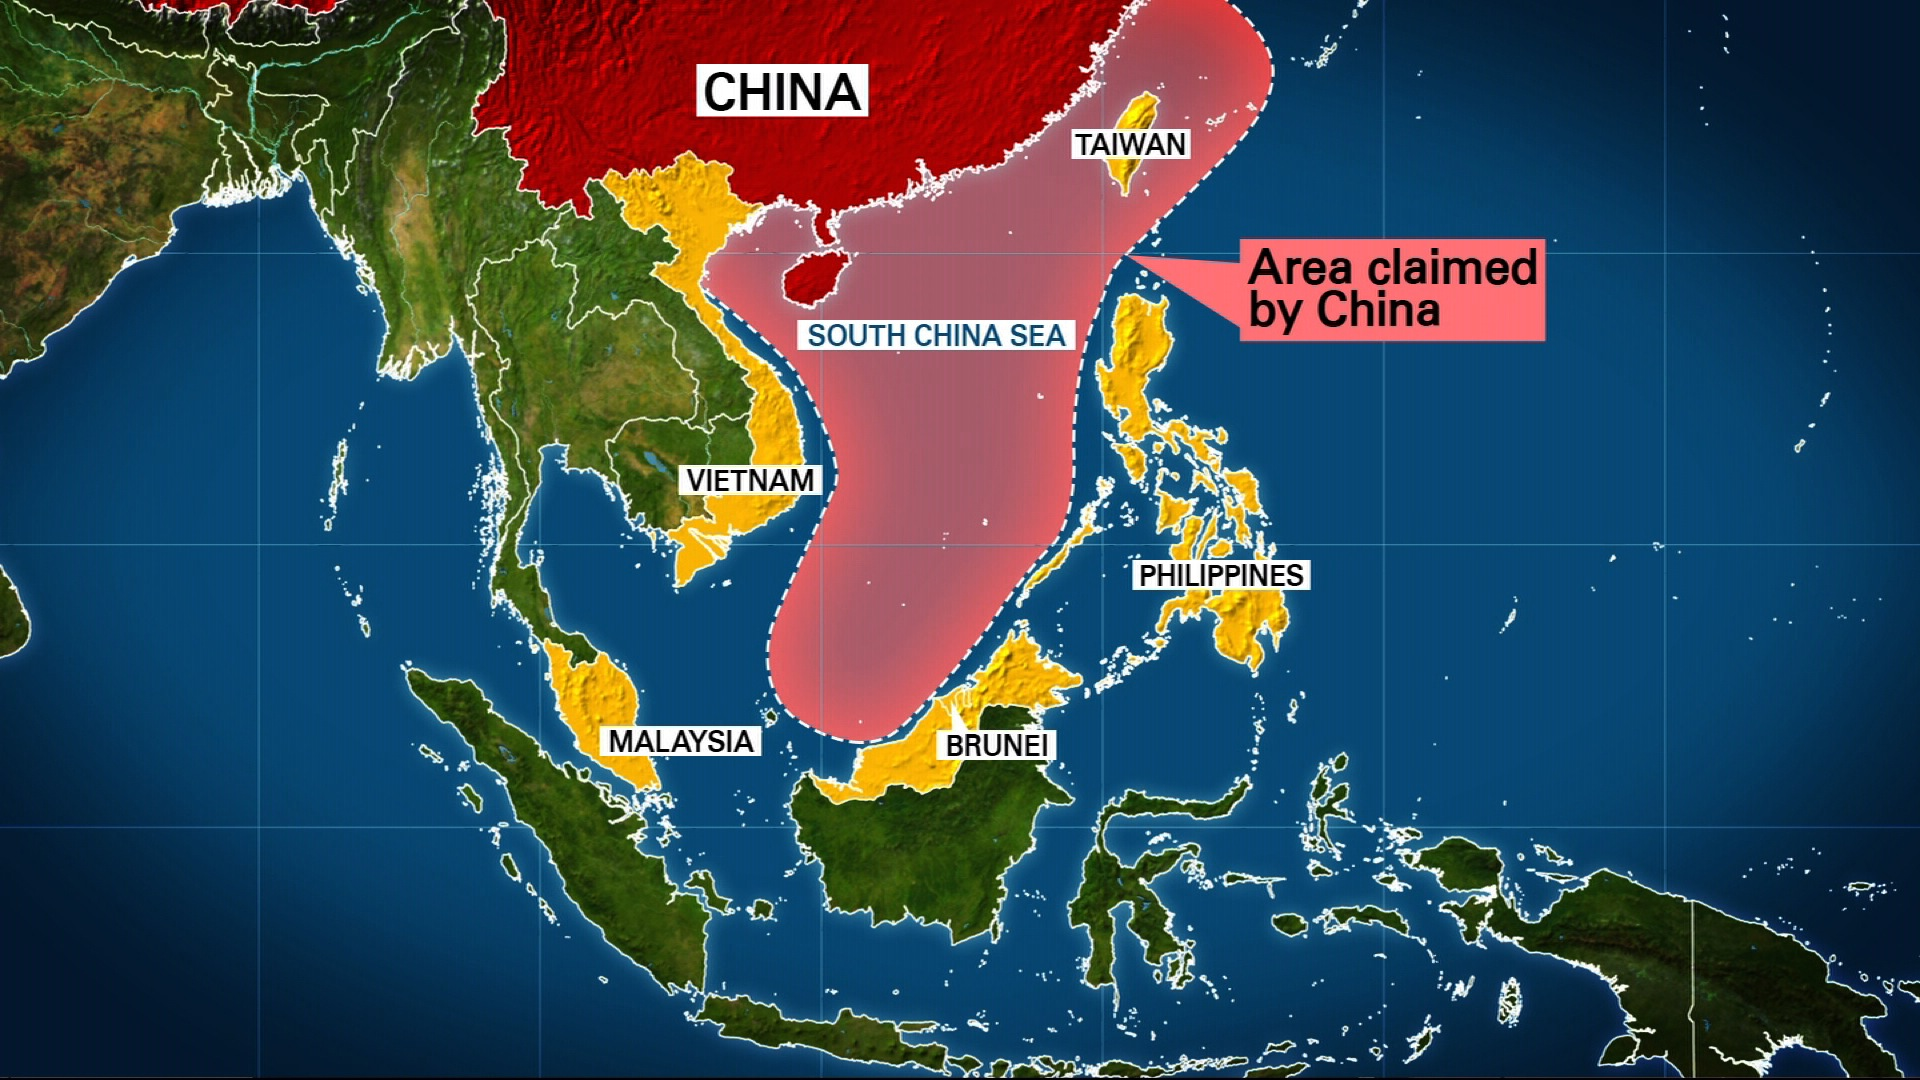 CNN's rare view of contested South China Sea - CNN Video on caspian sea, bay of bengal, arabian sea, sea of japan, map of red sea area, map of baltic sea area, yangtze river, map of caspian sea area, south china sea islands, map of east china sea area, red sea, yellow sea, gobi desert, map of aegean sea area, map of barents sea area, indian ocean, caribbean sea, mediterranean sea, black sea, east china sea, yellow river, map of china and oceans, scarborough shoal, map of eastern sea, map of india and china sea, paracel islands, strait of malacca, spratly islands, map of black sea area, map of adriatic sea area,